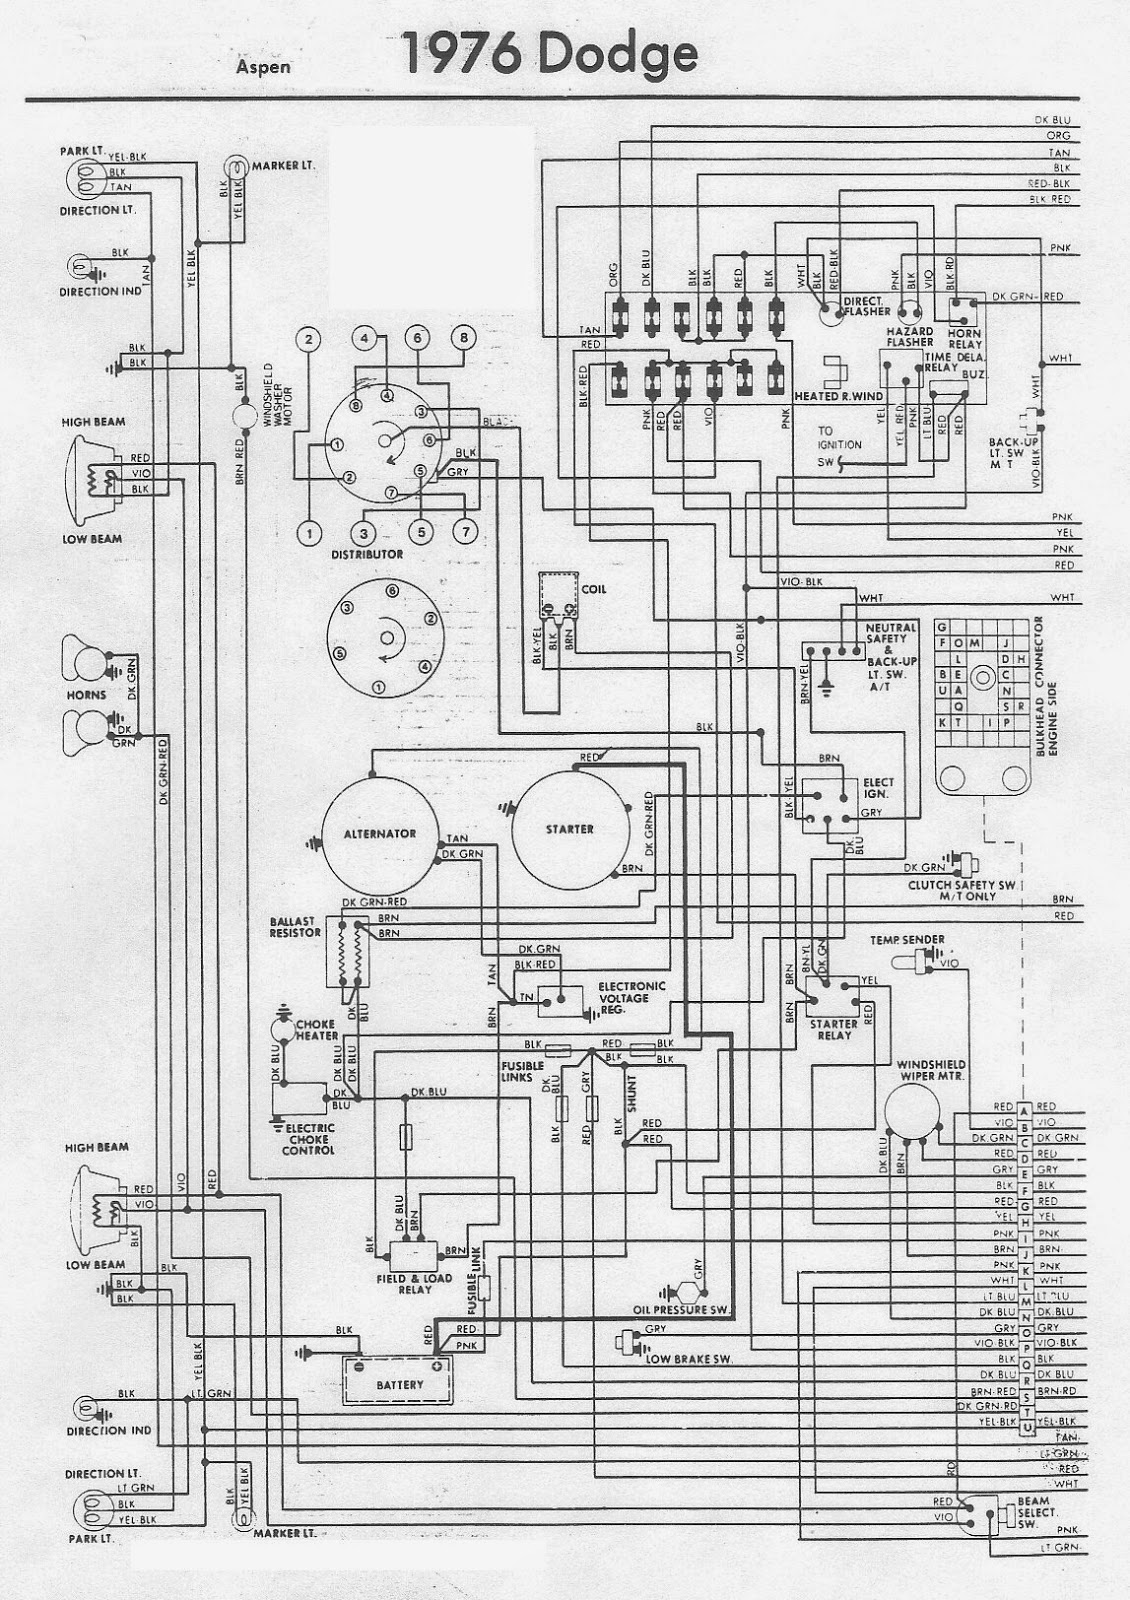 1978 Dodge Aspen Wiring Diagram - Wiring Diagrams Hidden on